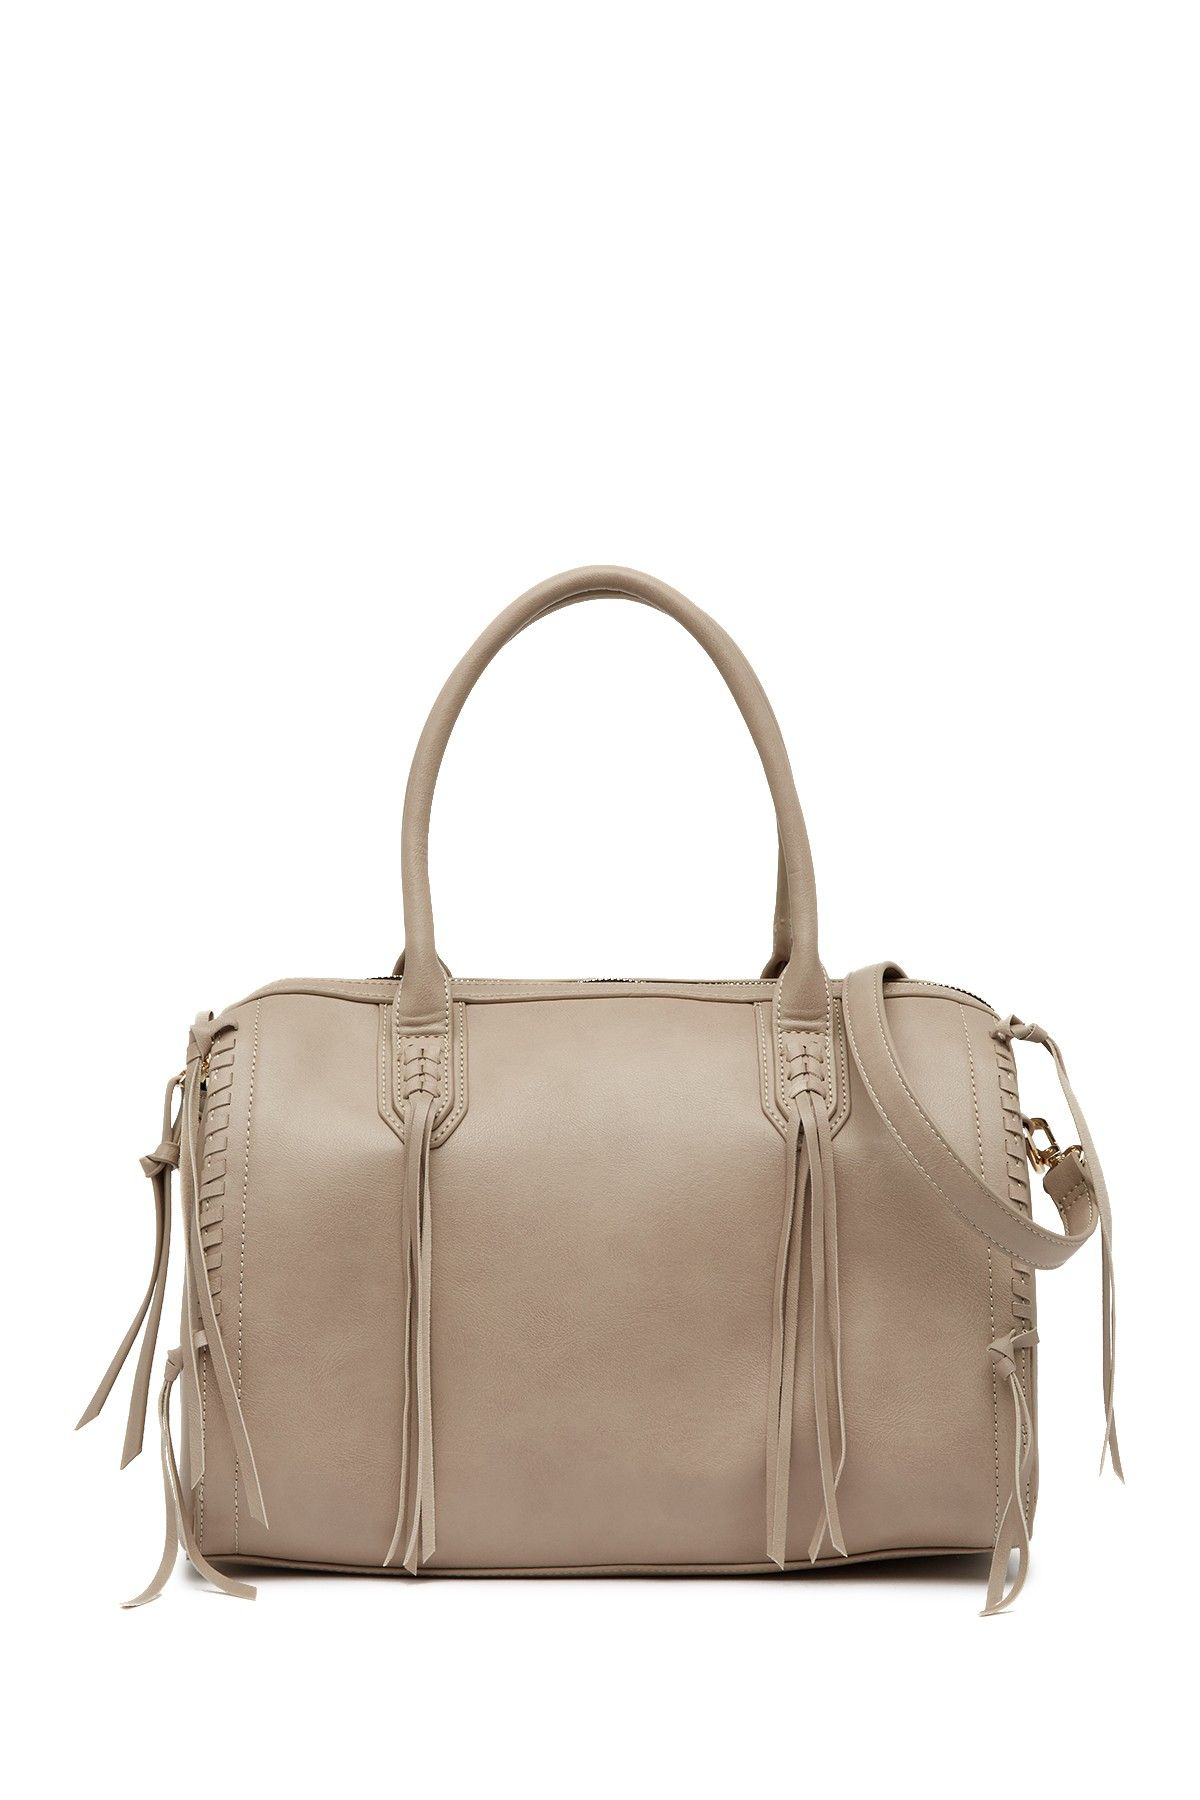 8a2614e429 Image of Urban Expressions Baxter Whipstitched Vegan Leather Satchel